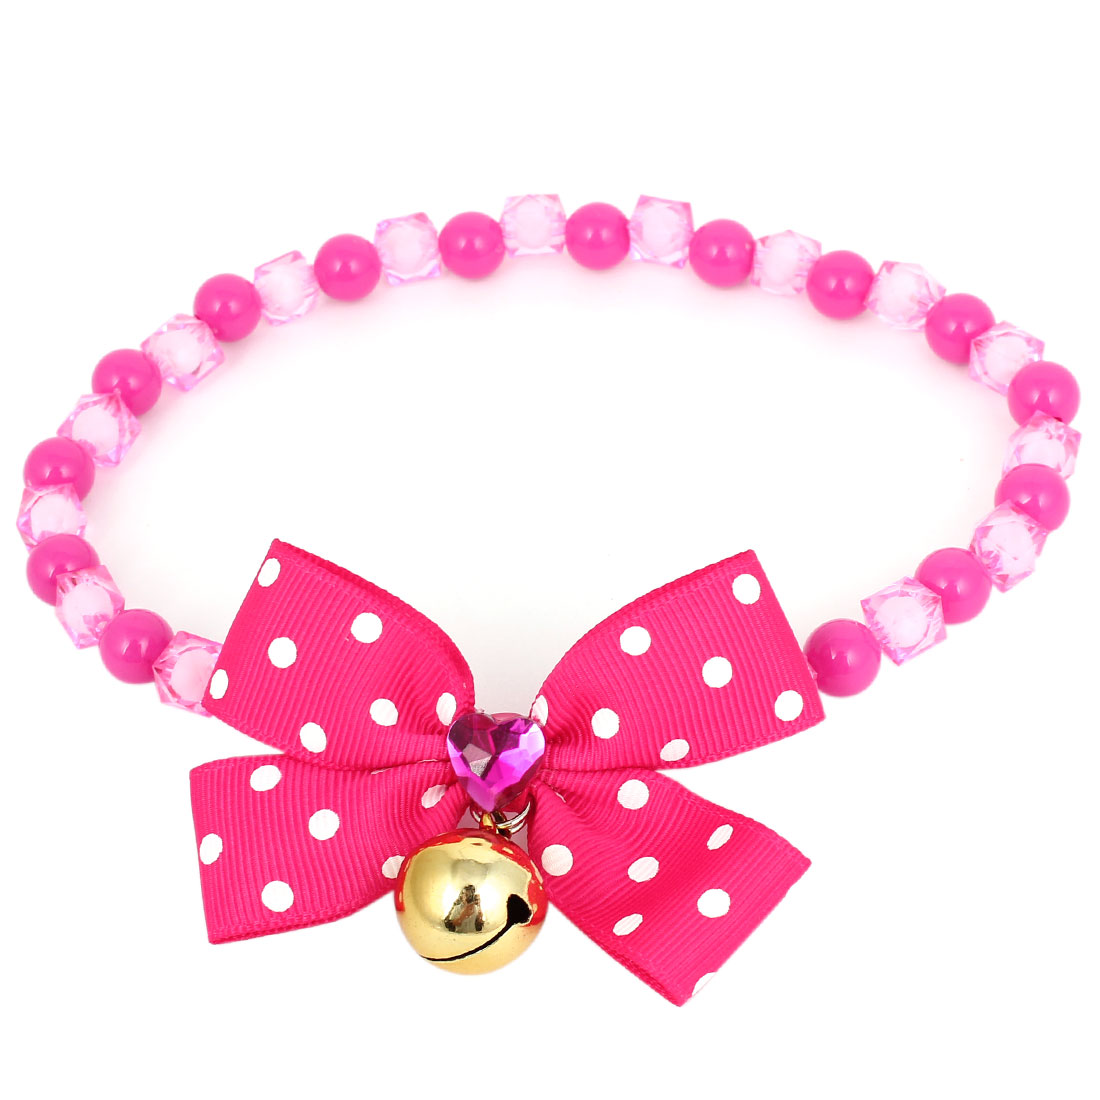 Metal Bell Pendant Bowtie Accent Pet Dog Plastic Beads Collar Necklace Fuchsia L